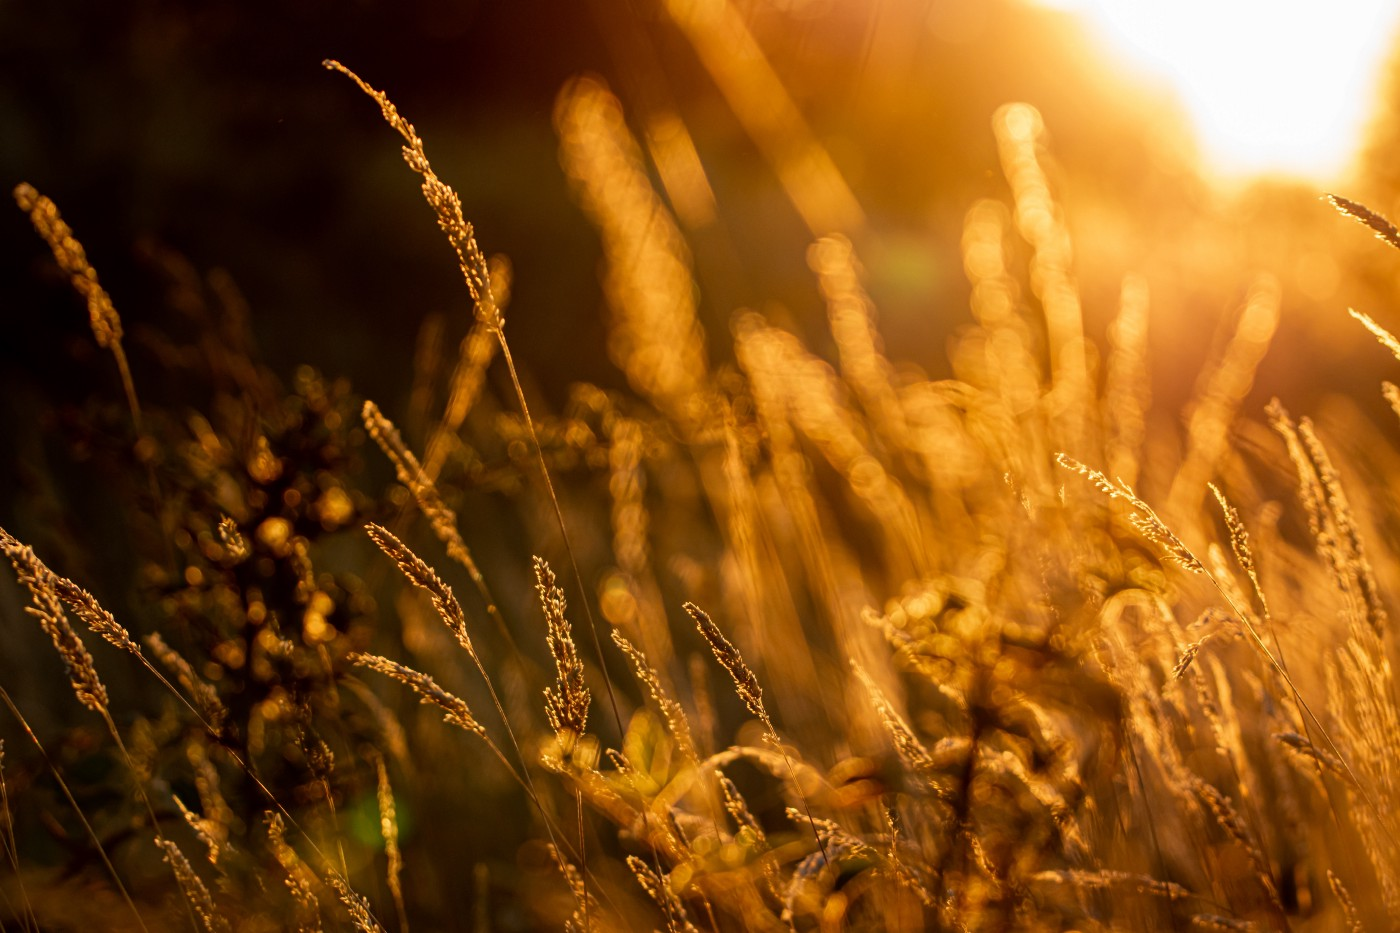 Tall grass glowing in the sunlight